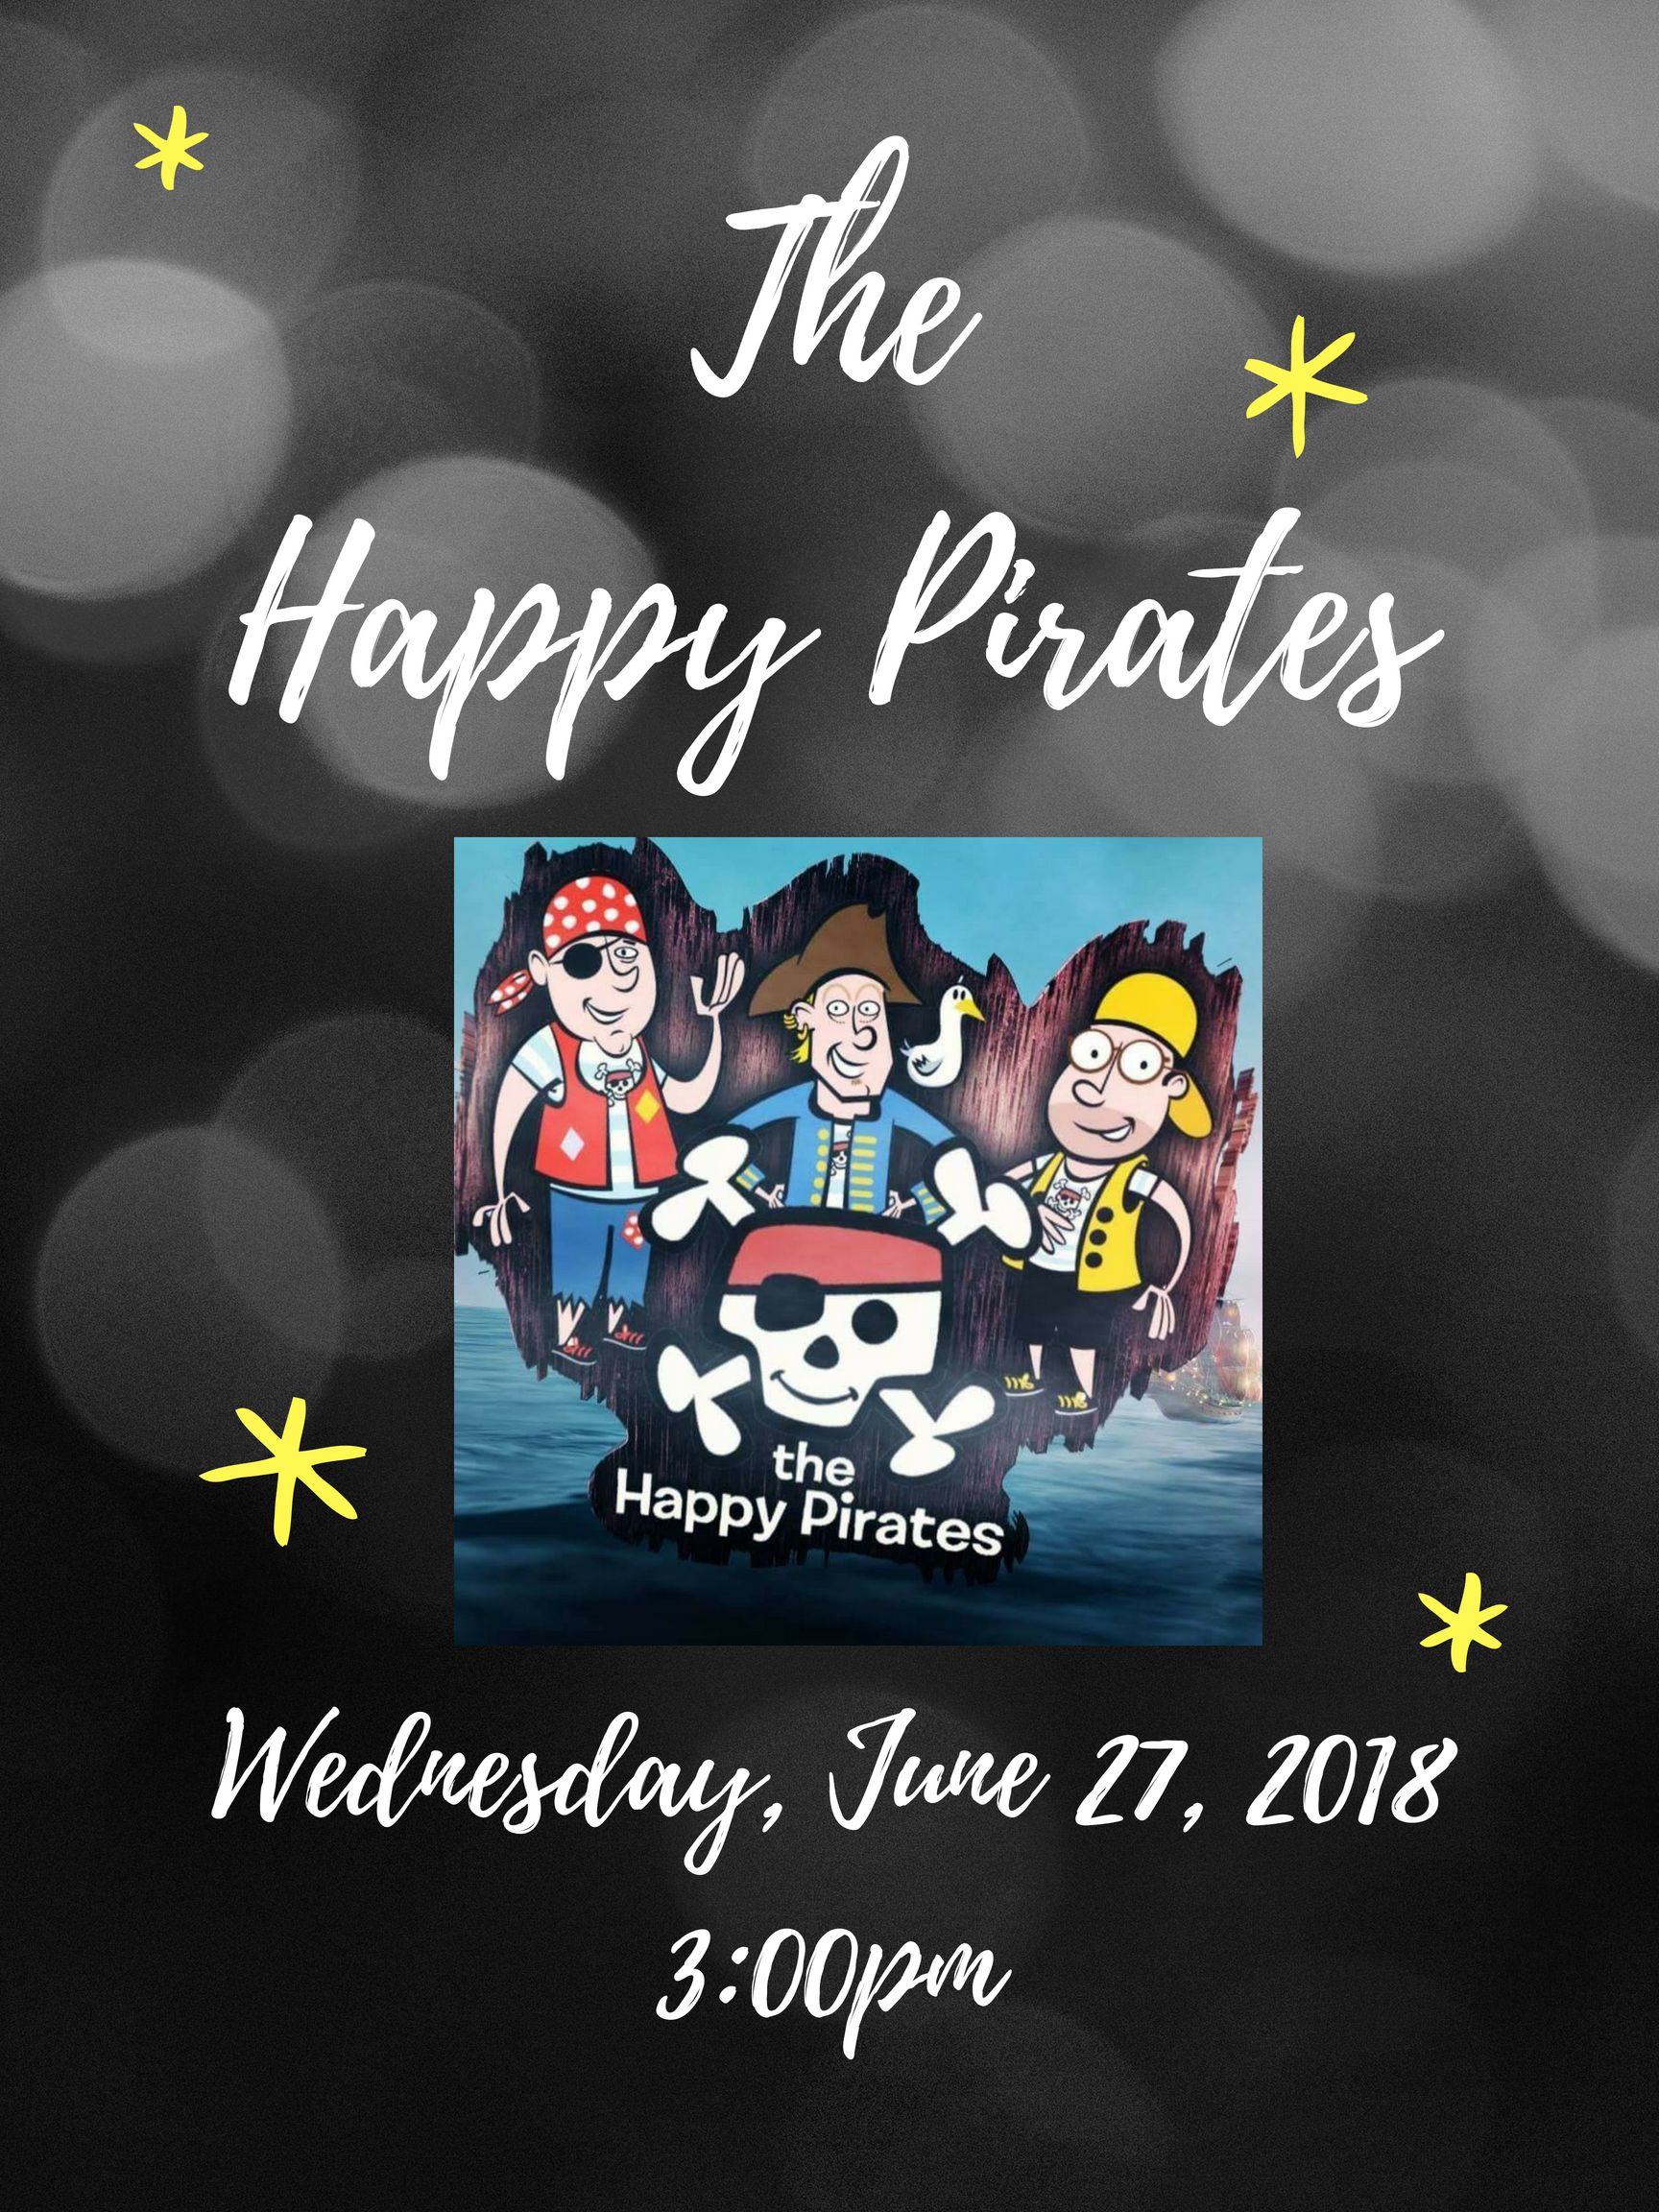 The Happy Pirates!